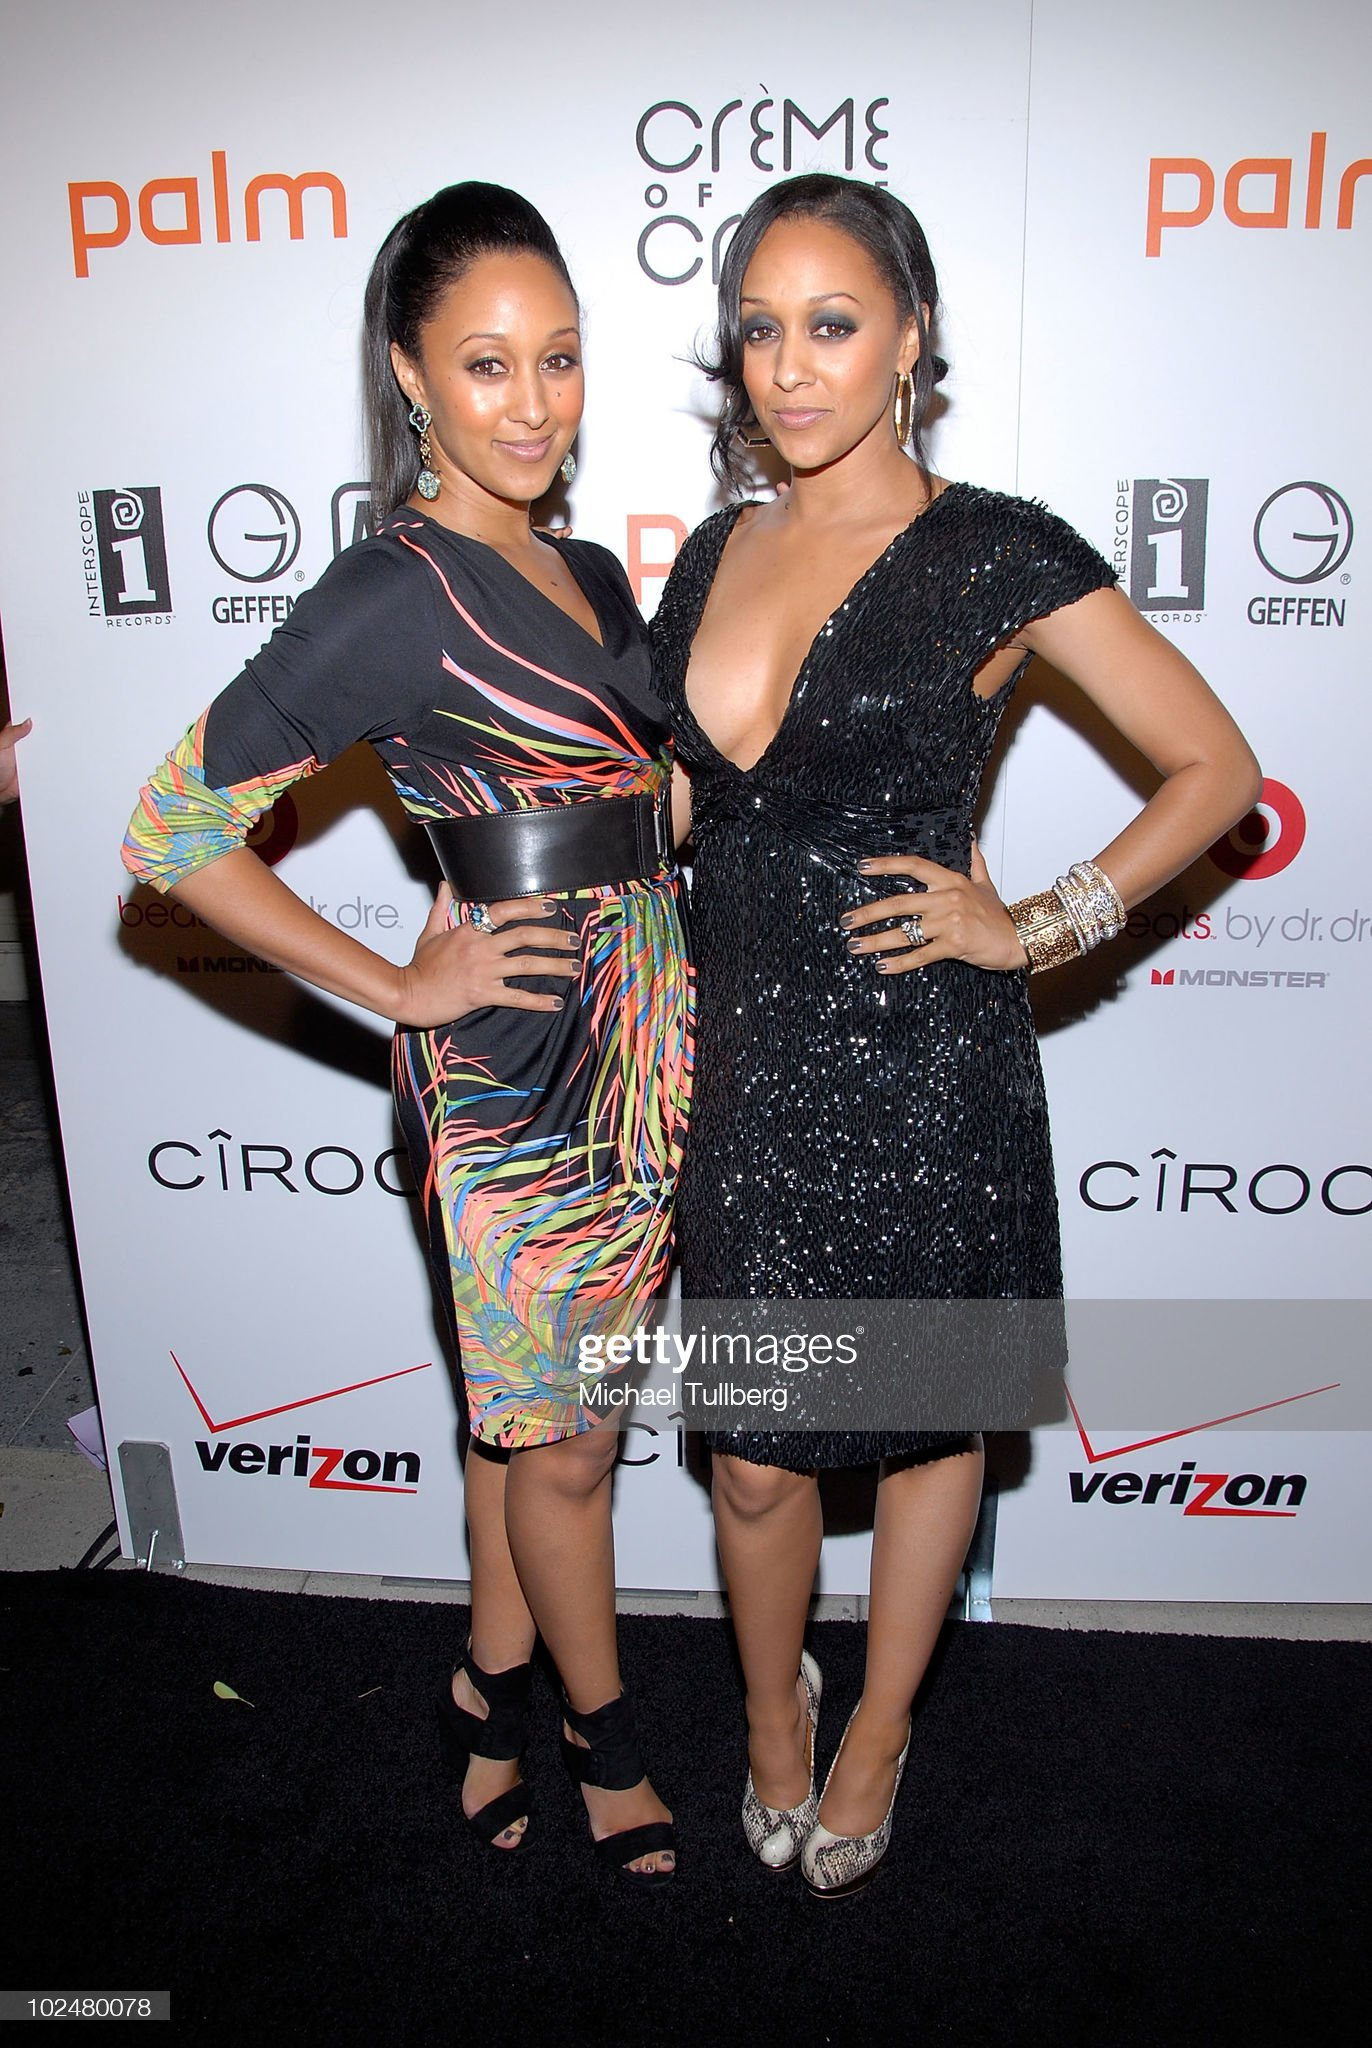 ¿Cuánto mide Tamera Mowry? - Altura - Real height Actresses-tamera-and-tia-mowry-arrive-at-the-interscope-geffen-am-picture-id102480078?s=2048x2048